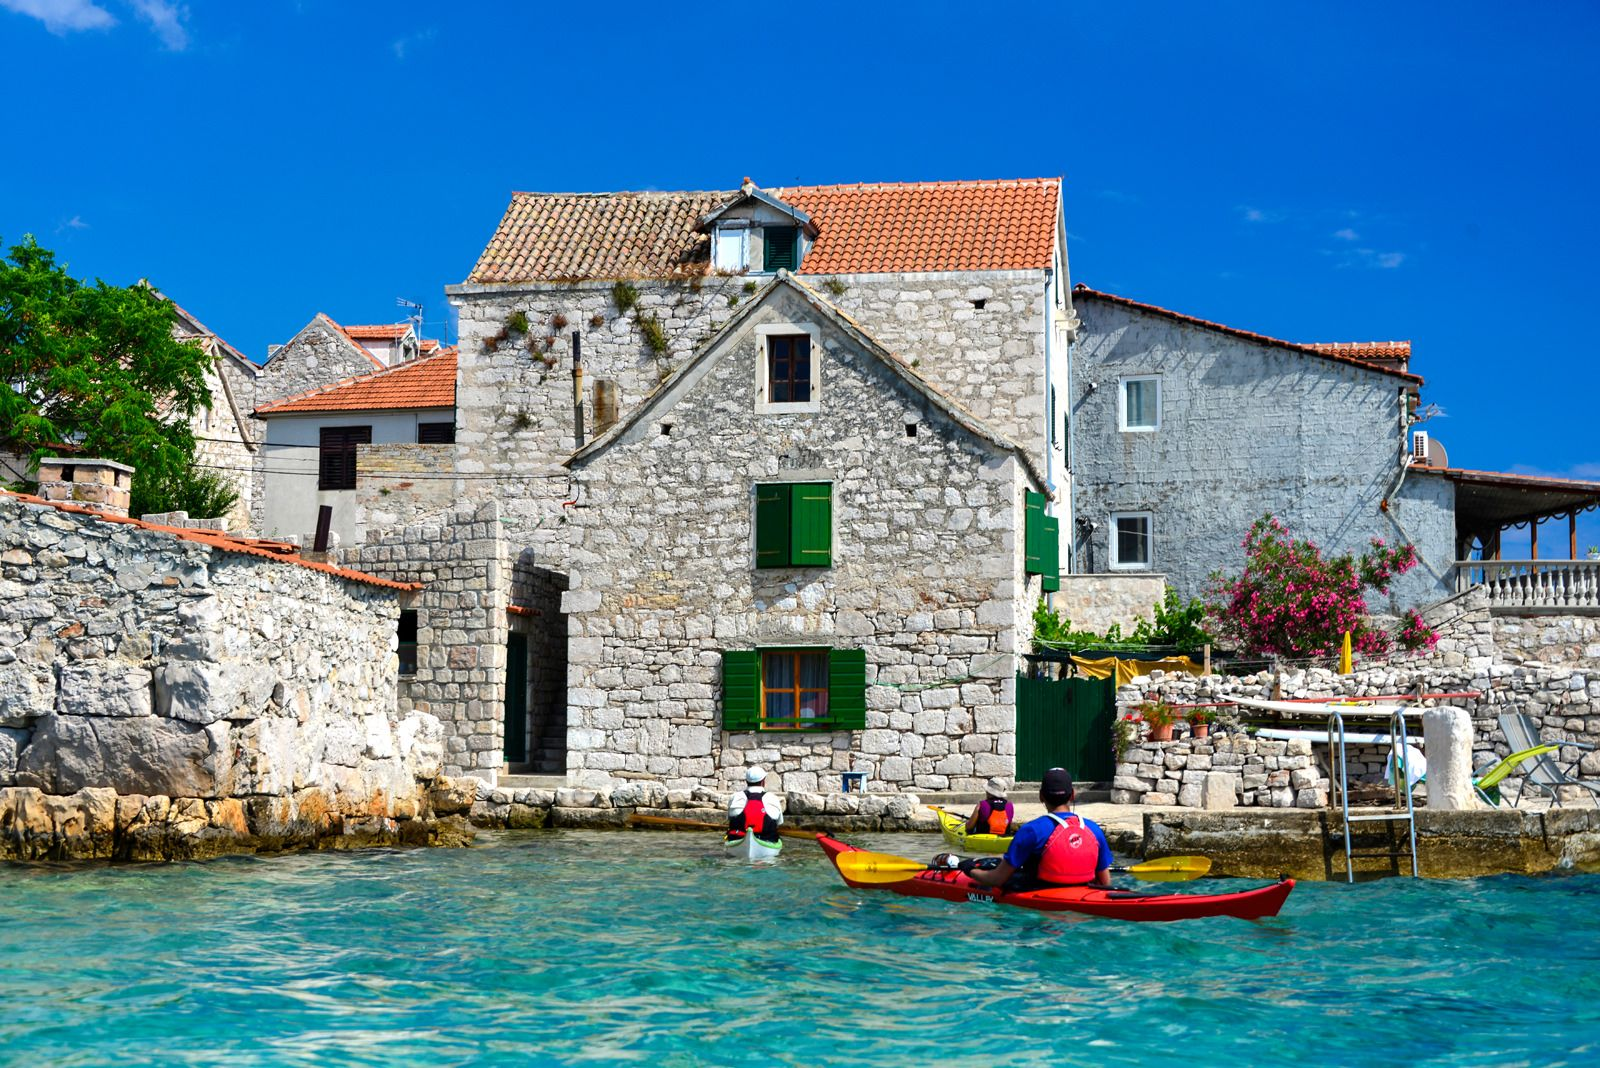 Croatia Kayaking Tours Of Remote Dalmatian Coast Islands Including The Kornati Archipelago Kayak Trips From Boutique Hotels Featuring Croatian Cuisine